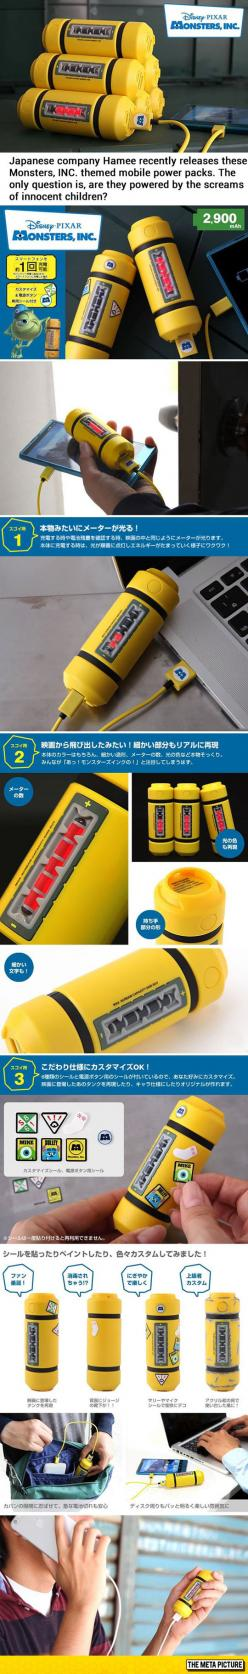 Monster, Inc. Themed Mobile Power Packs. I Wonder What Are They Powered By?